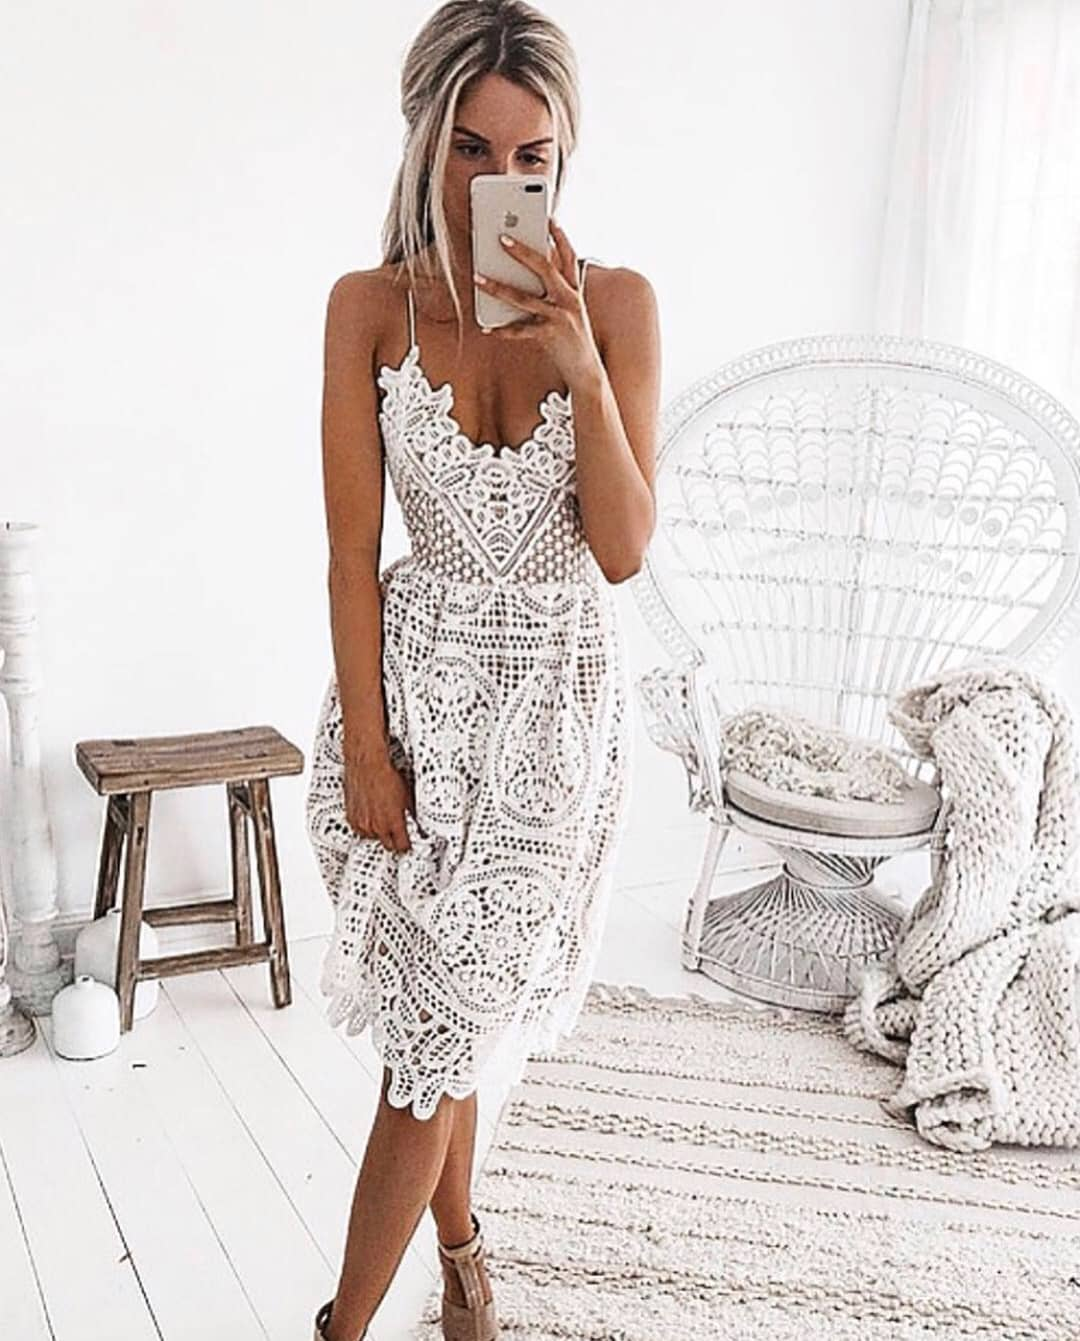 Spaghetti Strap White Crochet Dress For Summer Boho Parties 2020